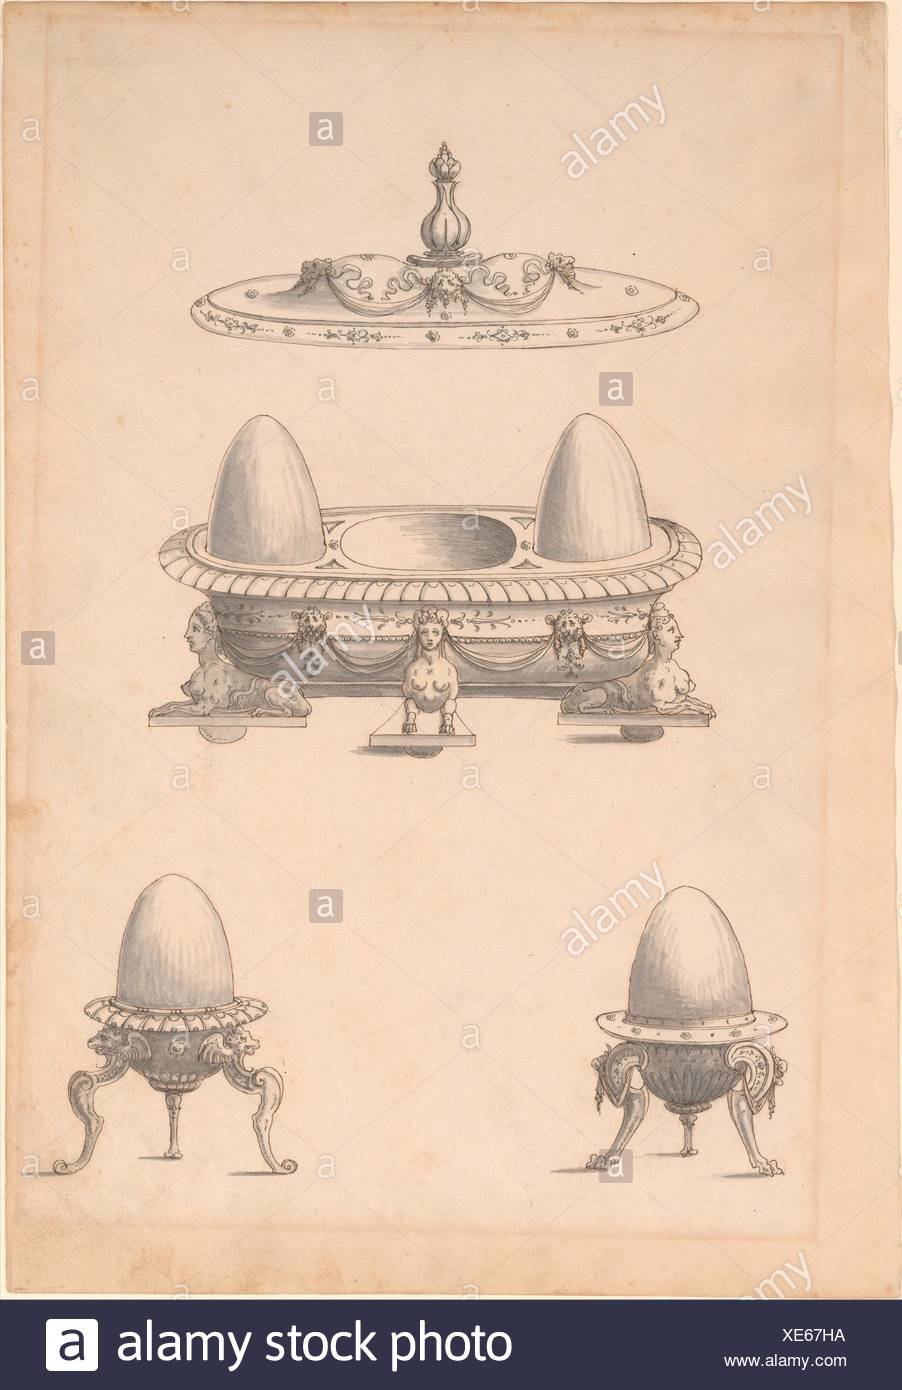 Design for Parade Egg Cups and Combined Egg Cup/Salt Cellar with Lid. Artist: Erasmus Hornick (Netherlandish, Antwerp ca. 1520-1583 Prague); Date: - Stock Image